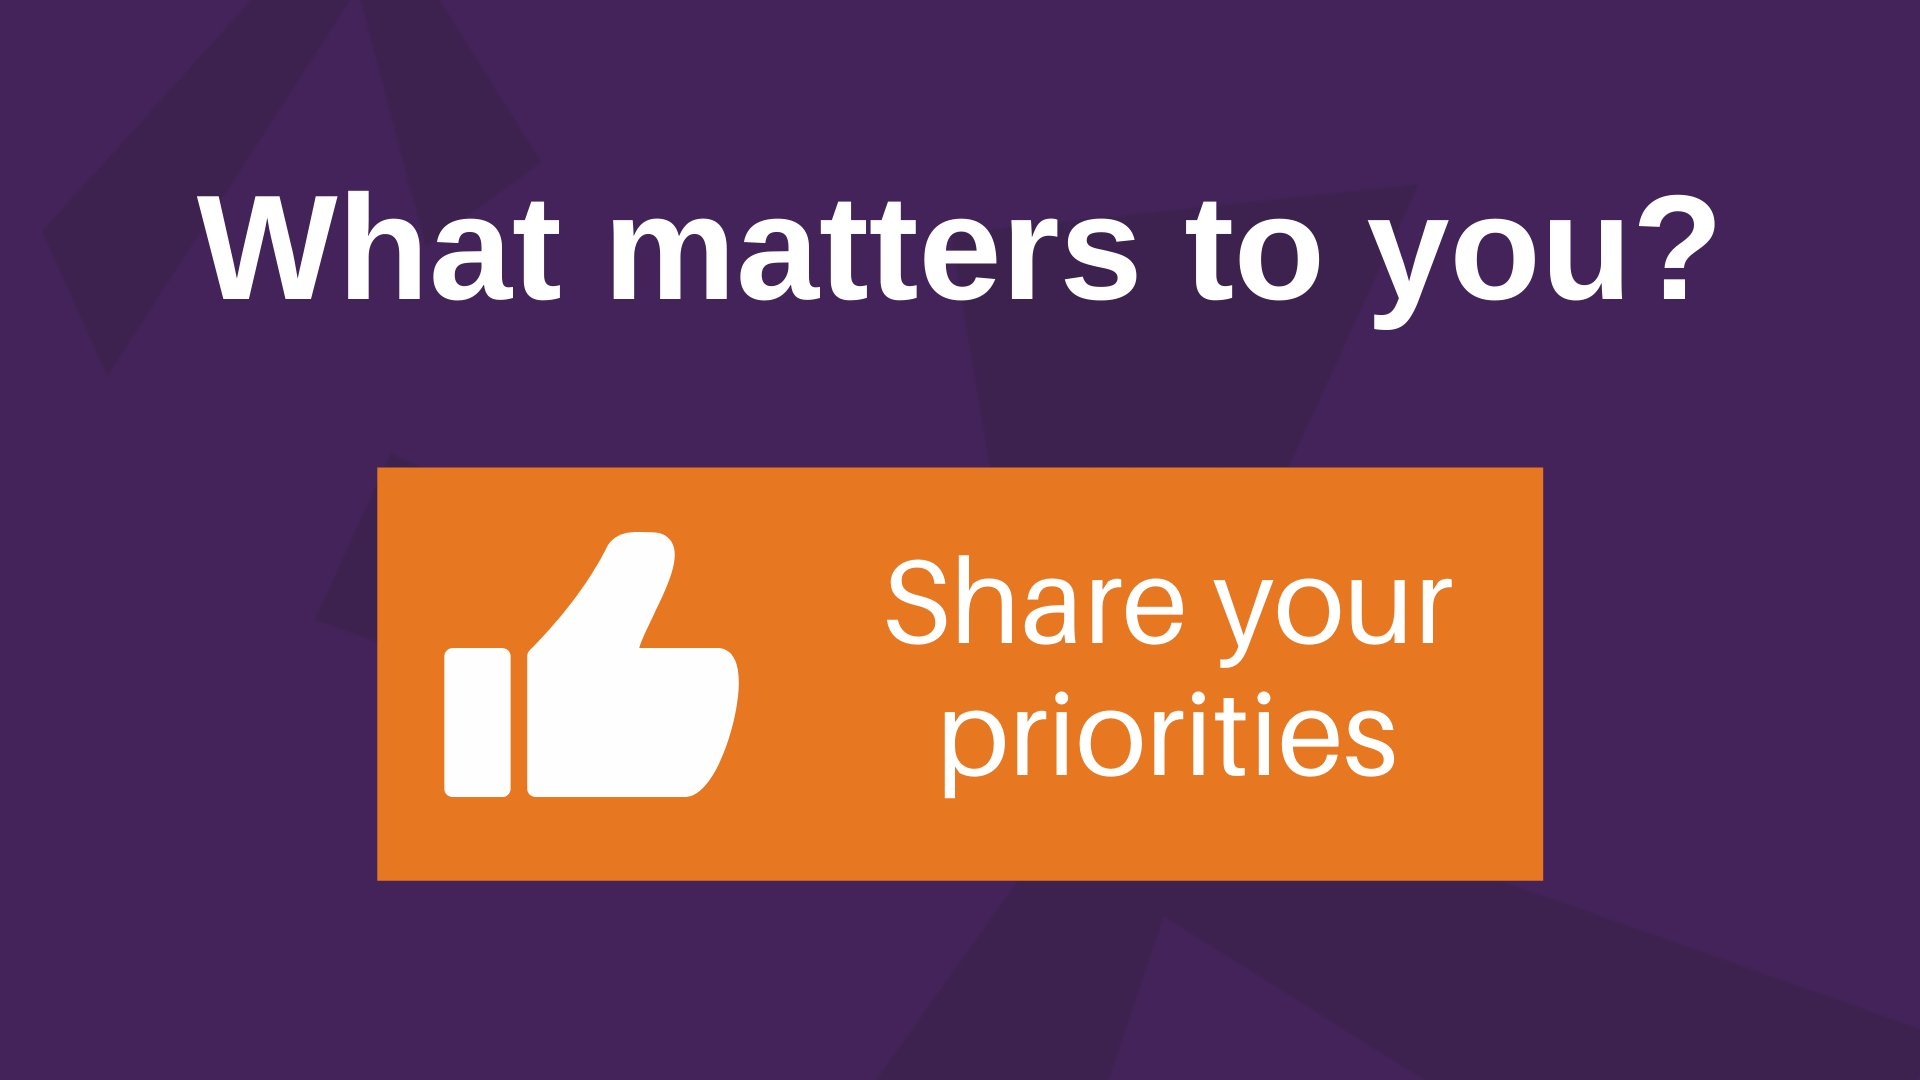 What matters to you? Share your prorities